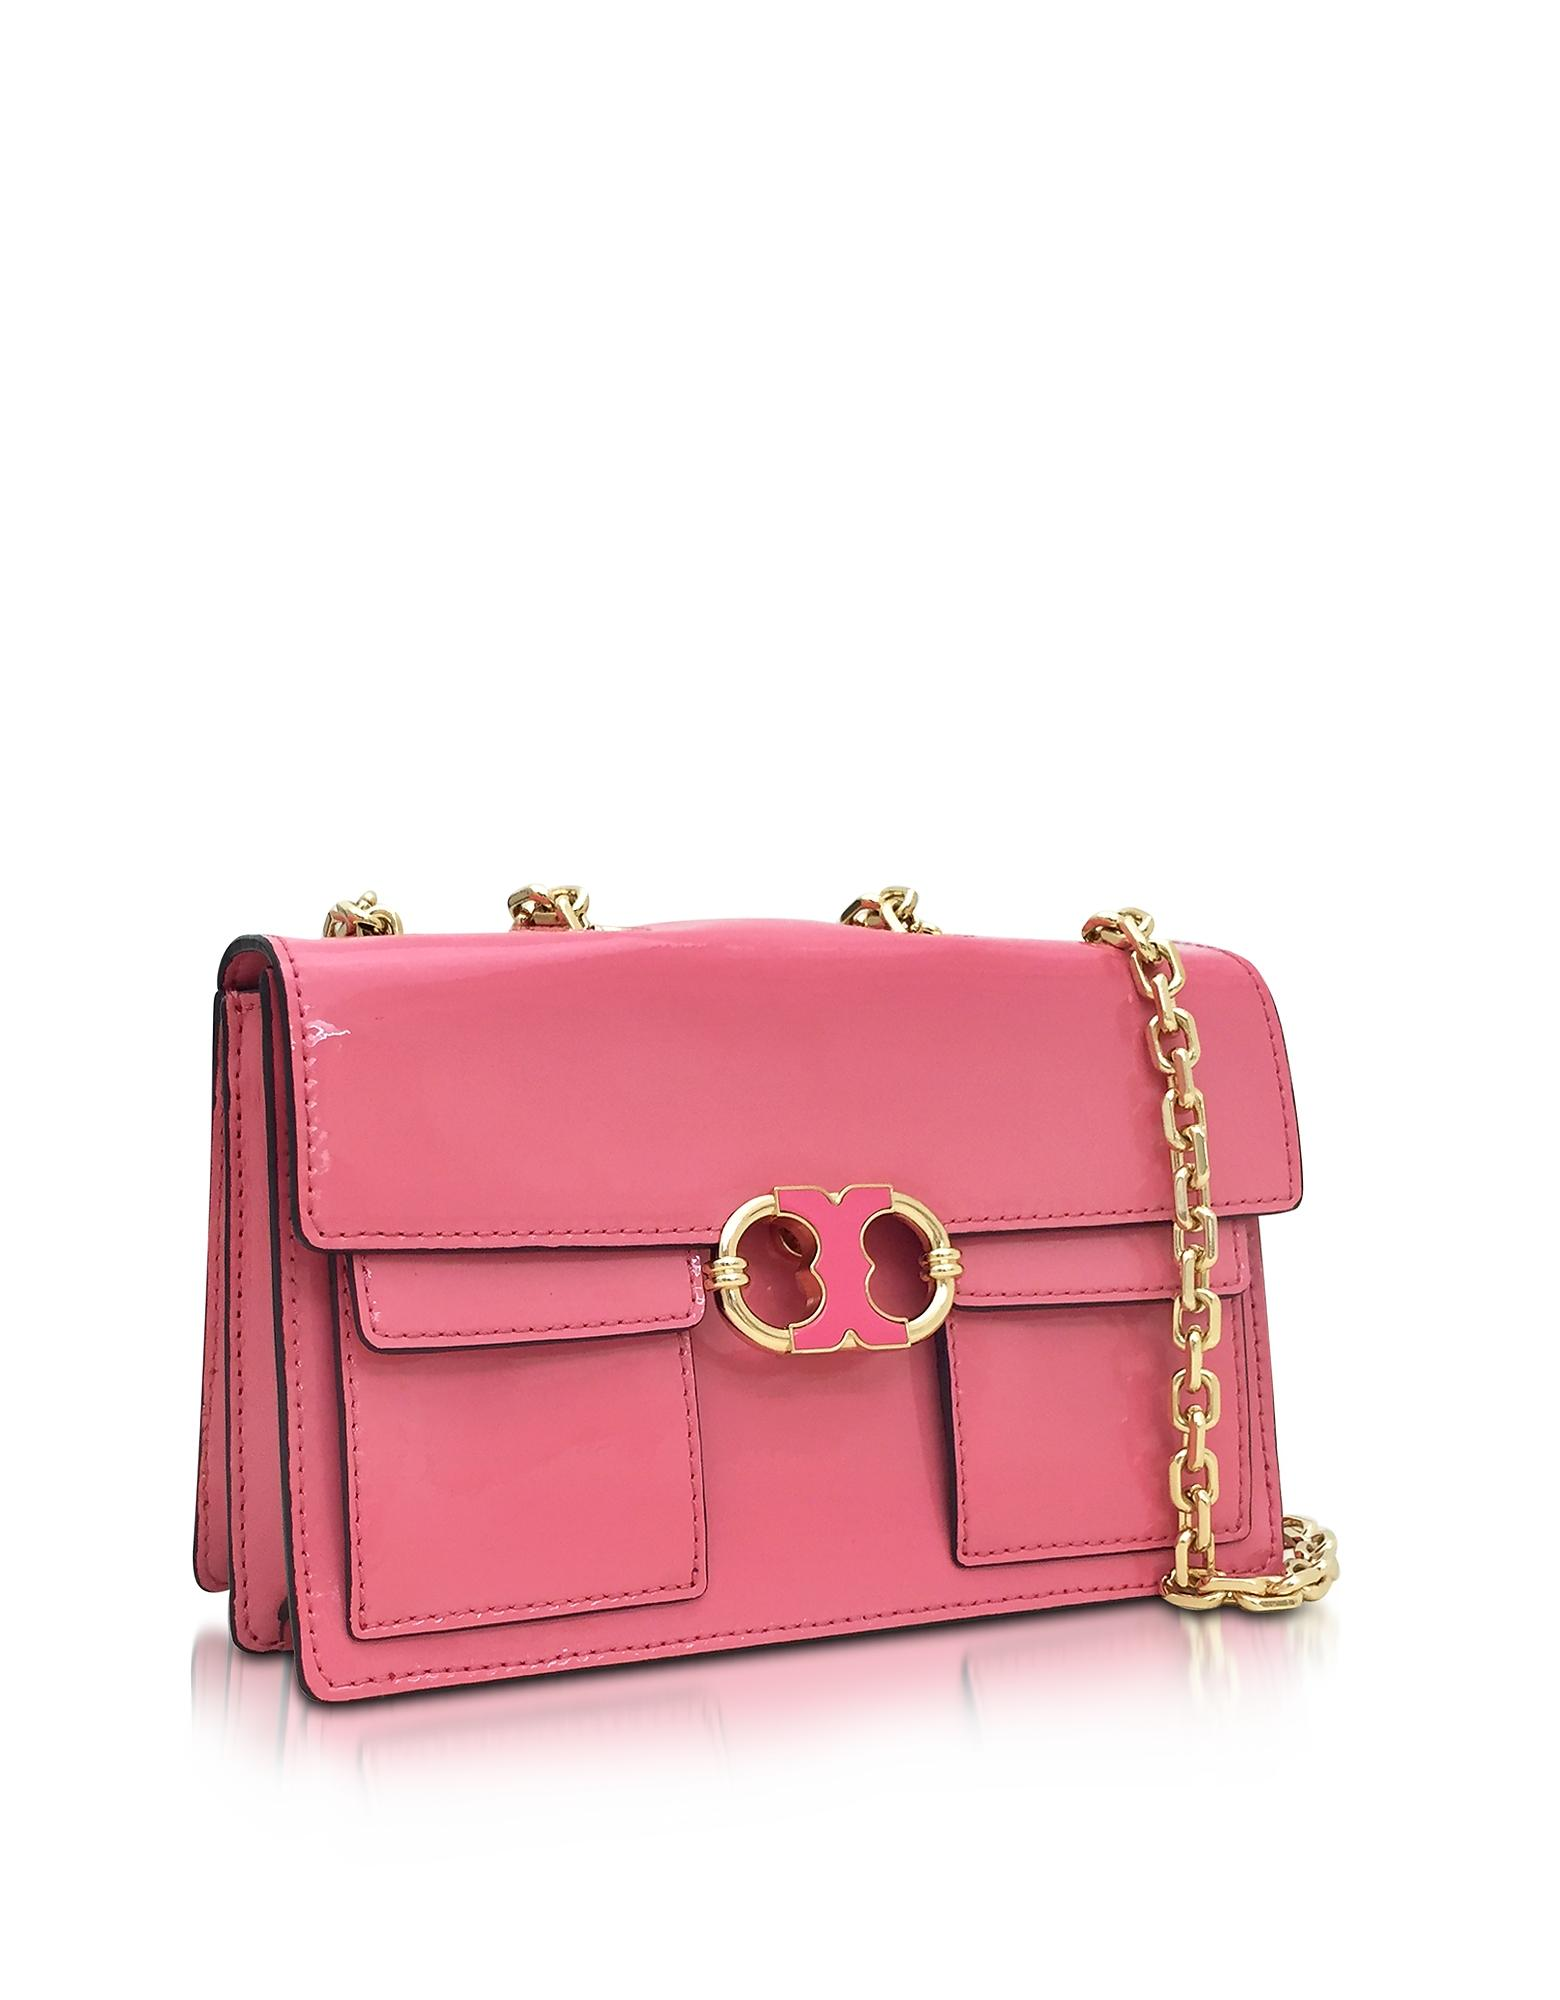 Lyst Tory Burch Gemini Link Cosmo Pink Patent Leather Chain Shoulder Bag In Pink